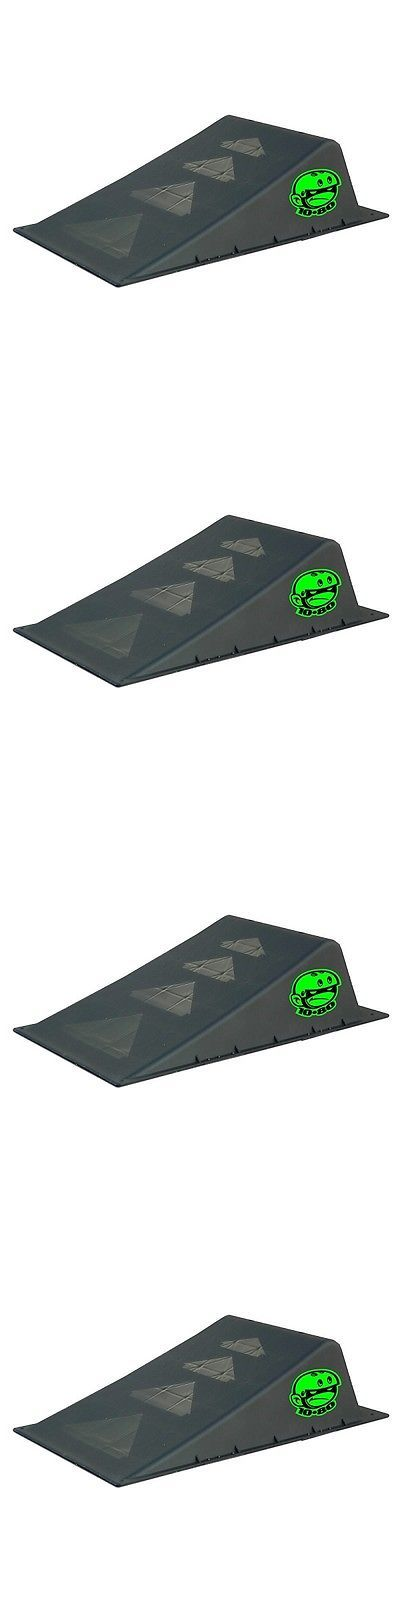 Ramps and Rails 91565: 1080 Mini Ramp Durable High-Impact Slip Resistant Bike Trick Jump Skate Park -> BUY IT NOW ONLY: $54.96 on eBay!